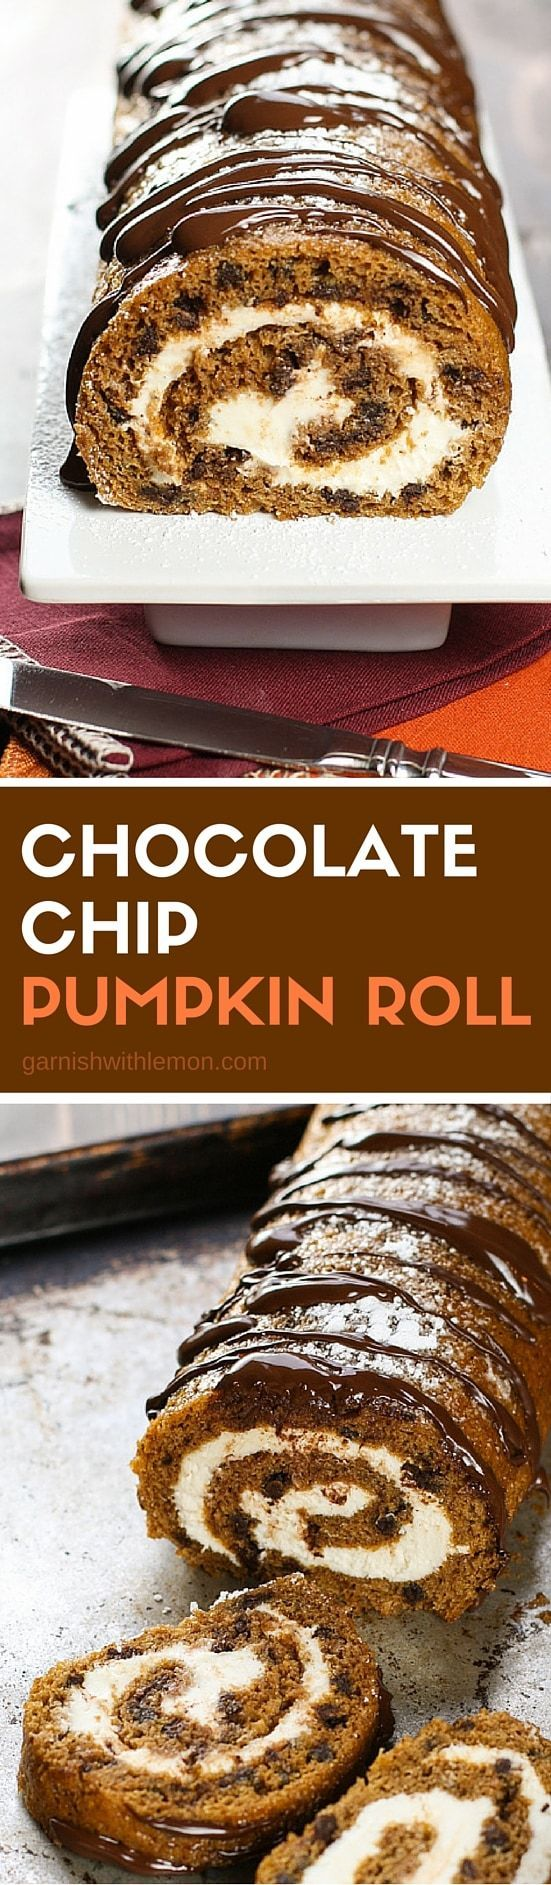 Put a chocolatey twist on your holiday dessert table with this irresistible Chocolate Chip Pumpkin Roll!